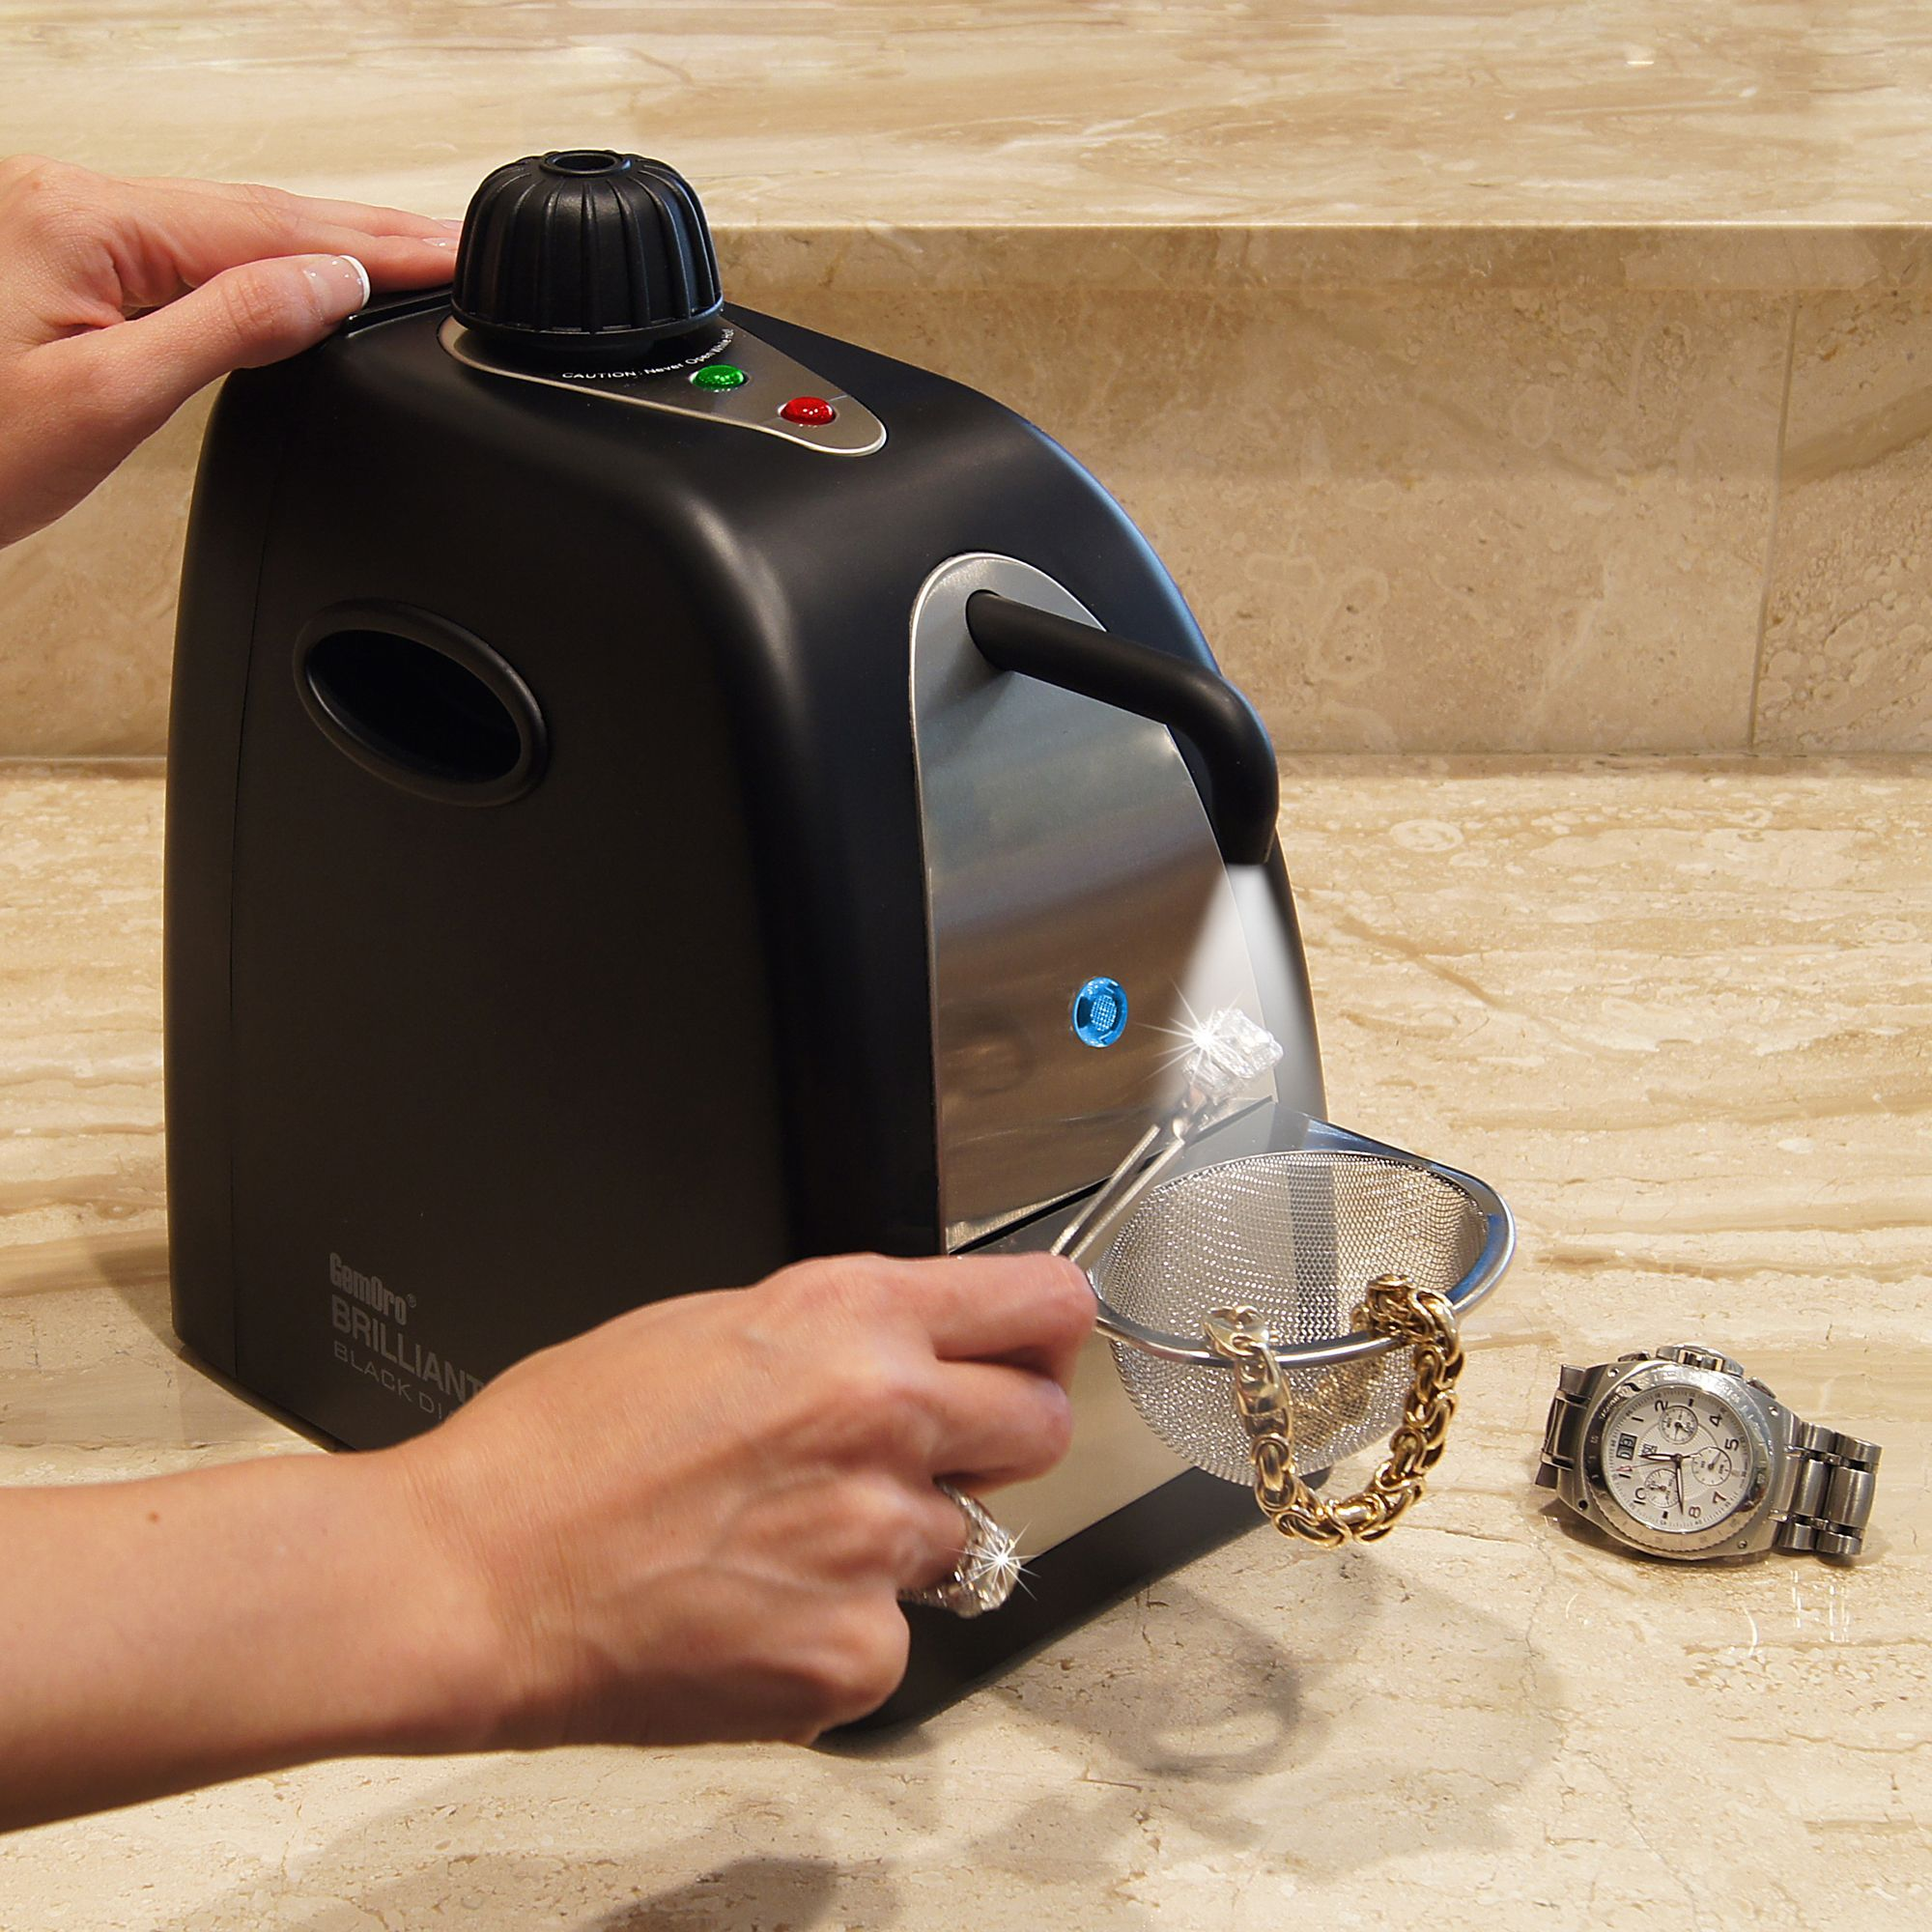 Jewelry Steamer   At home jewelry cleaner, Jewelry cleaner ...